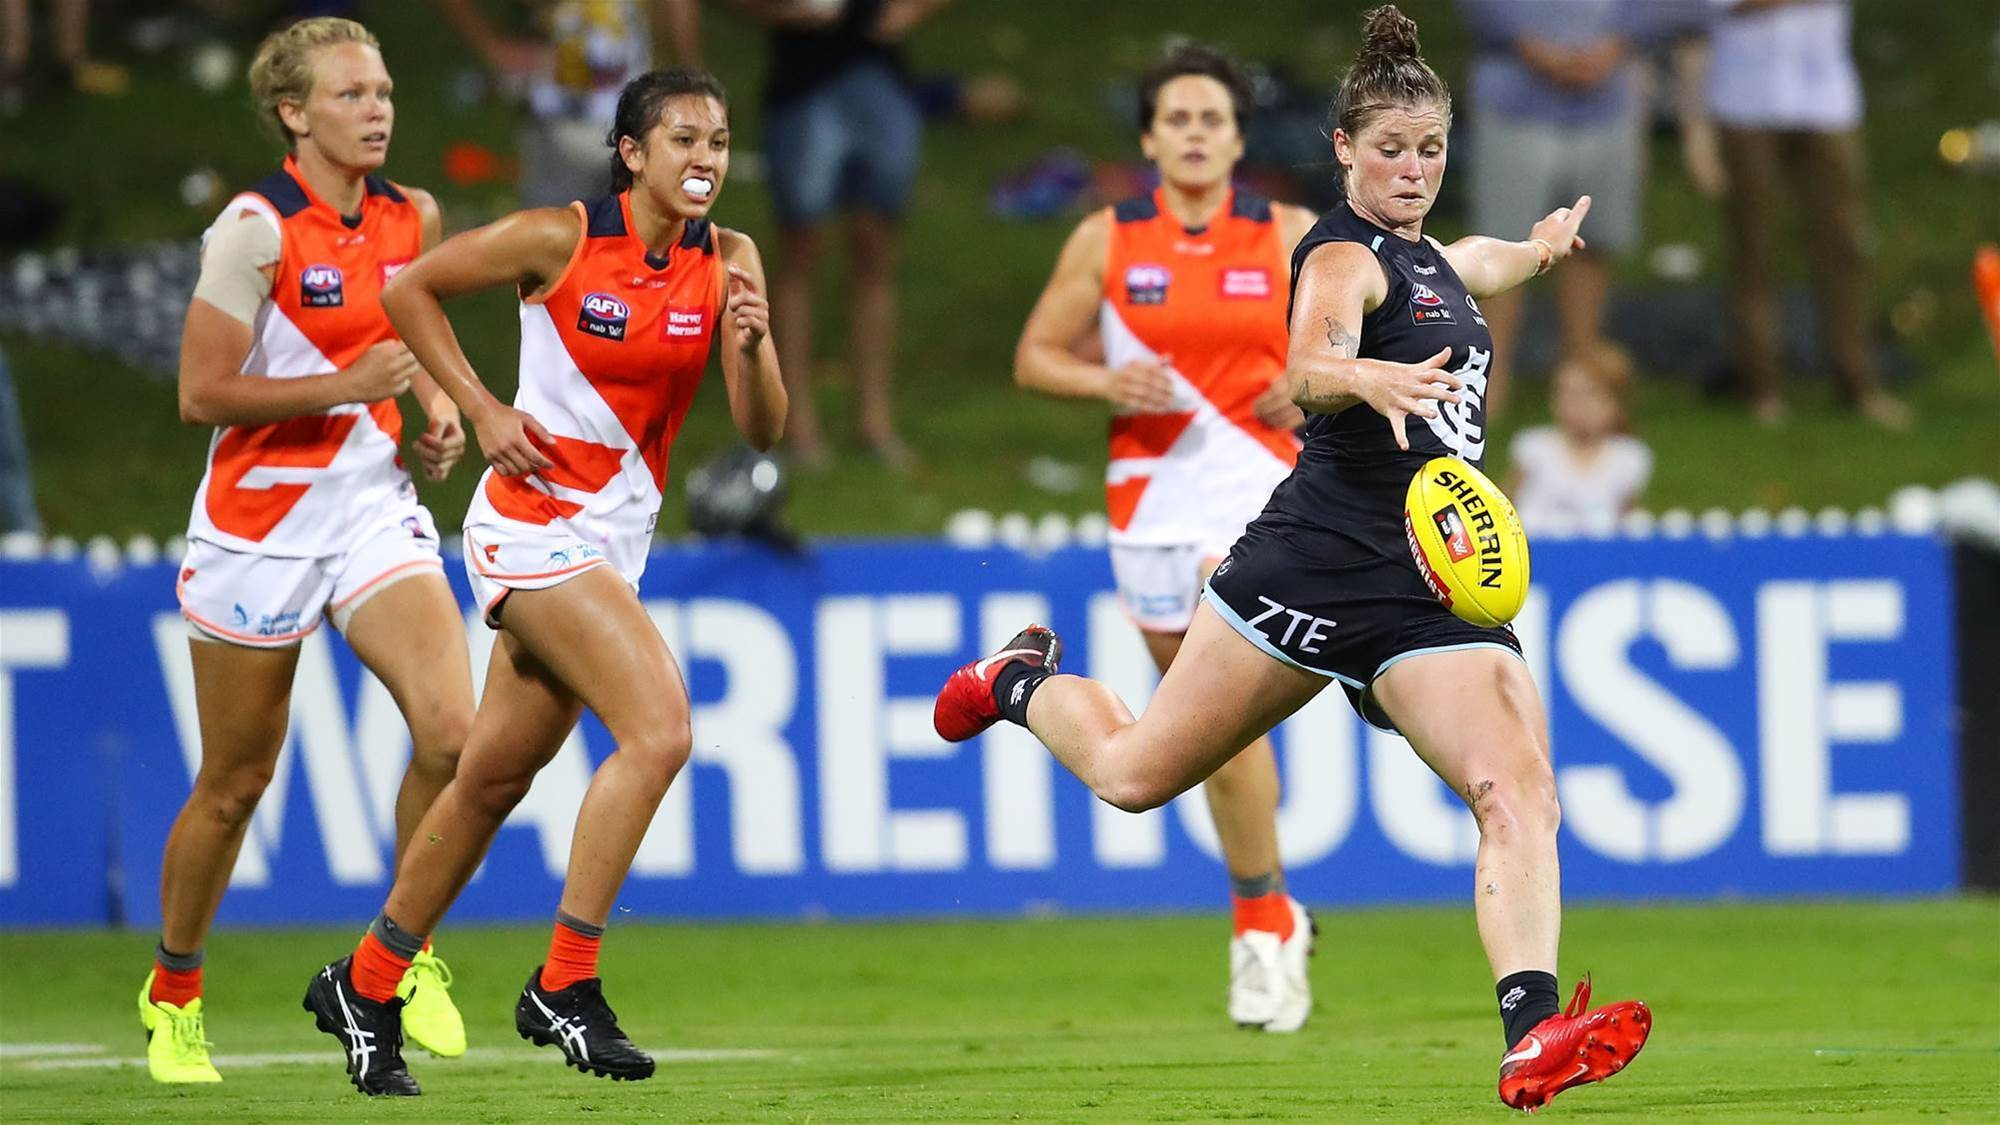 Bri Davey out for season